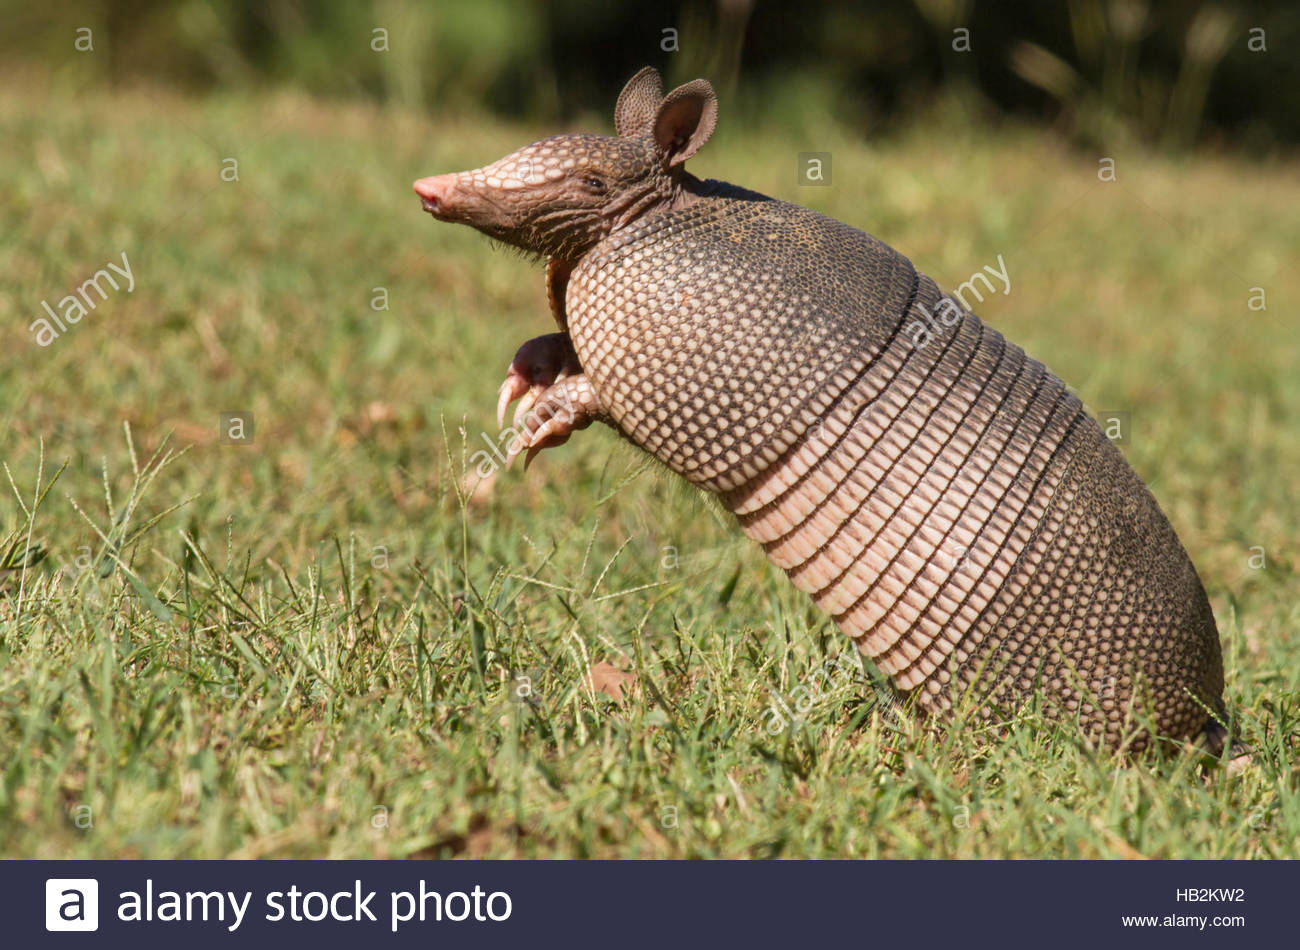 A Texas Armadillo (Dasypus novemcinctus) smelling the air trying to catch a scent. - Stock Image